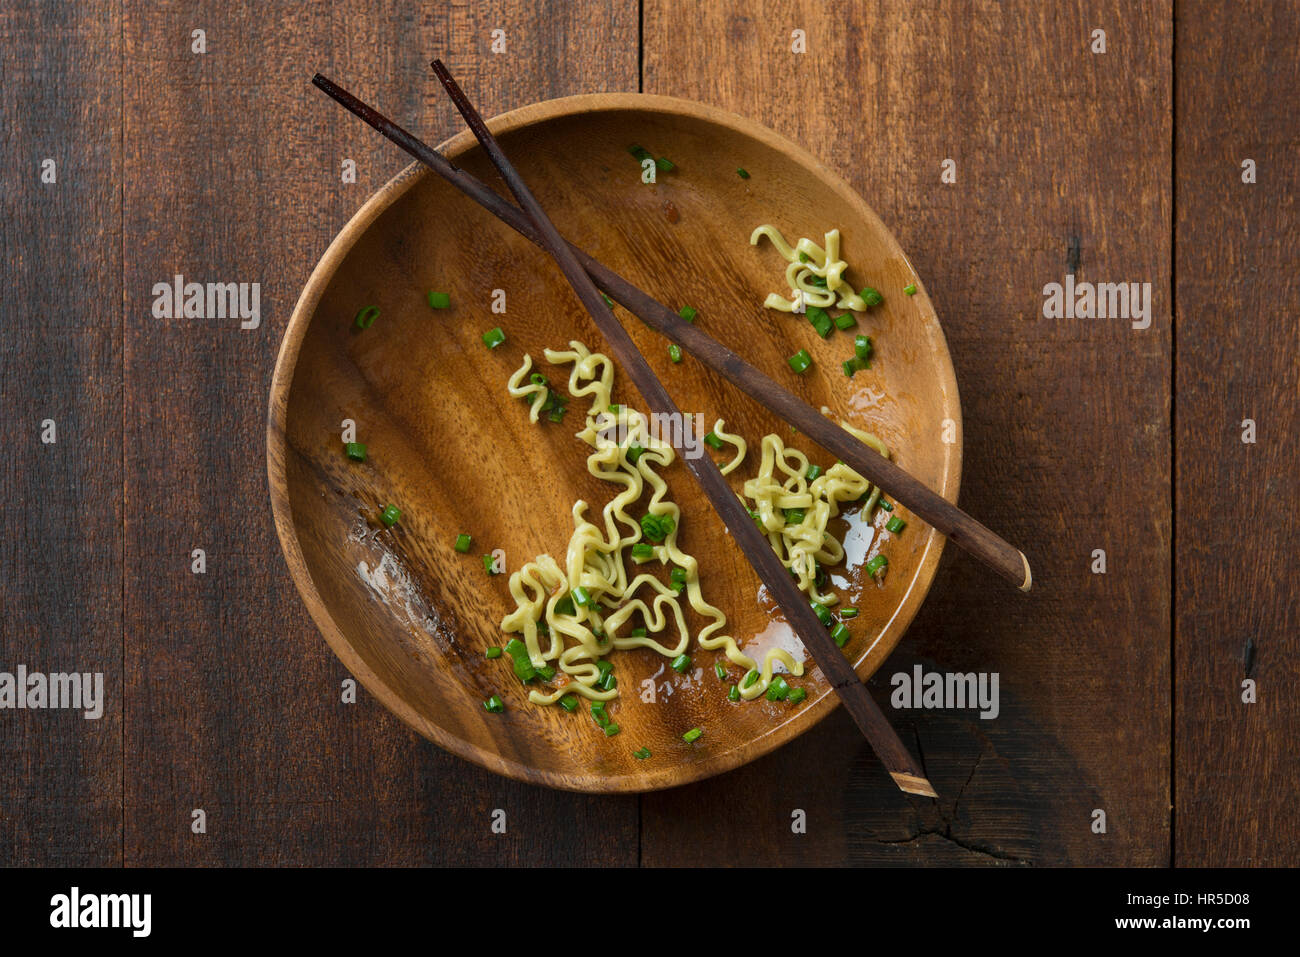 Top view leftover food dried noodles with chopsticks on rustic wooden table. - Stock Image